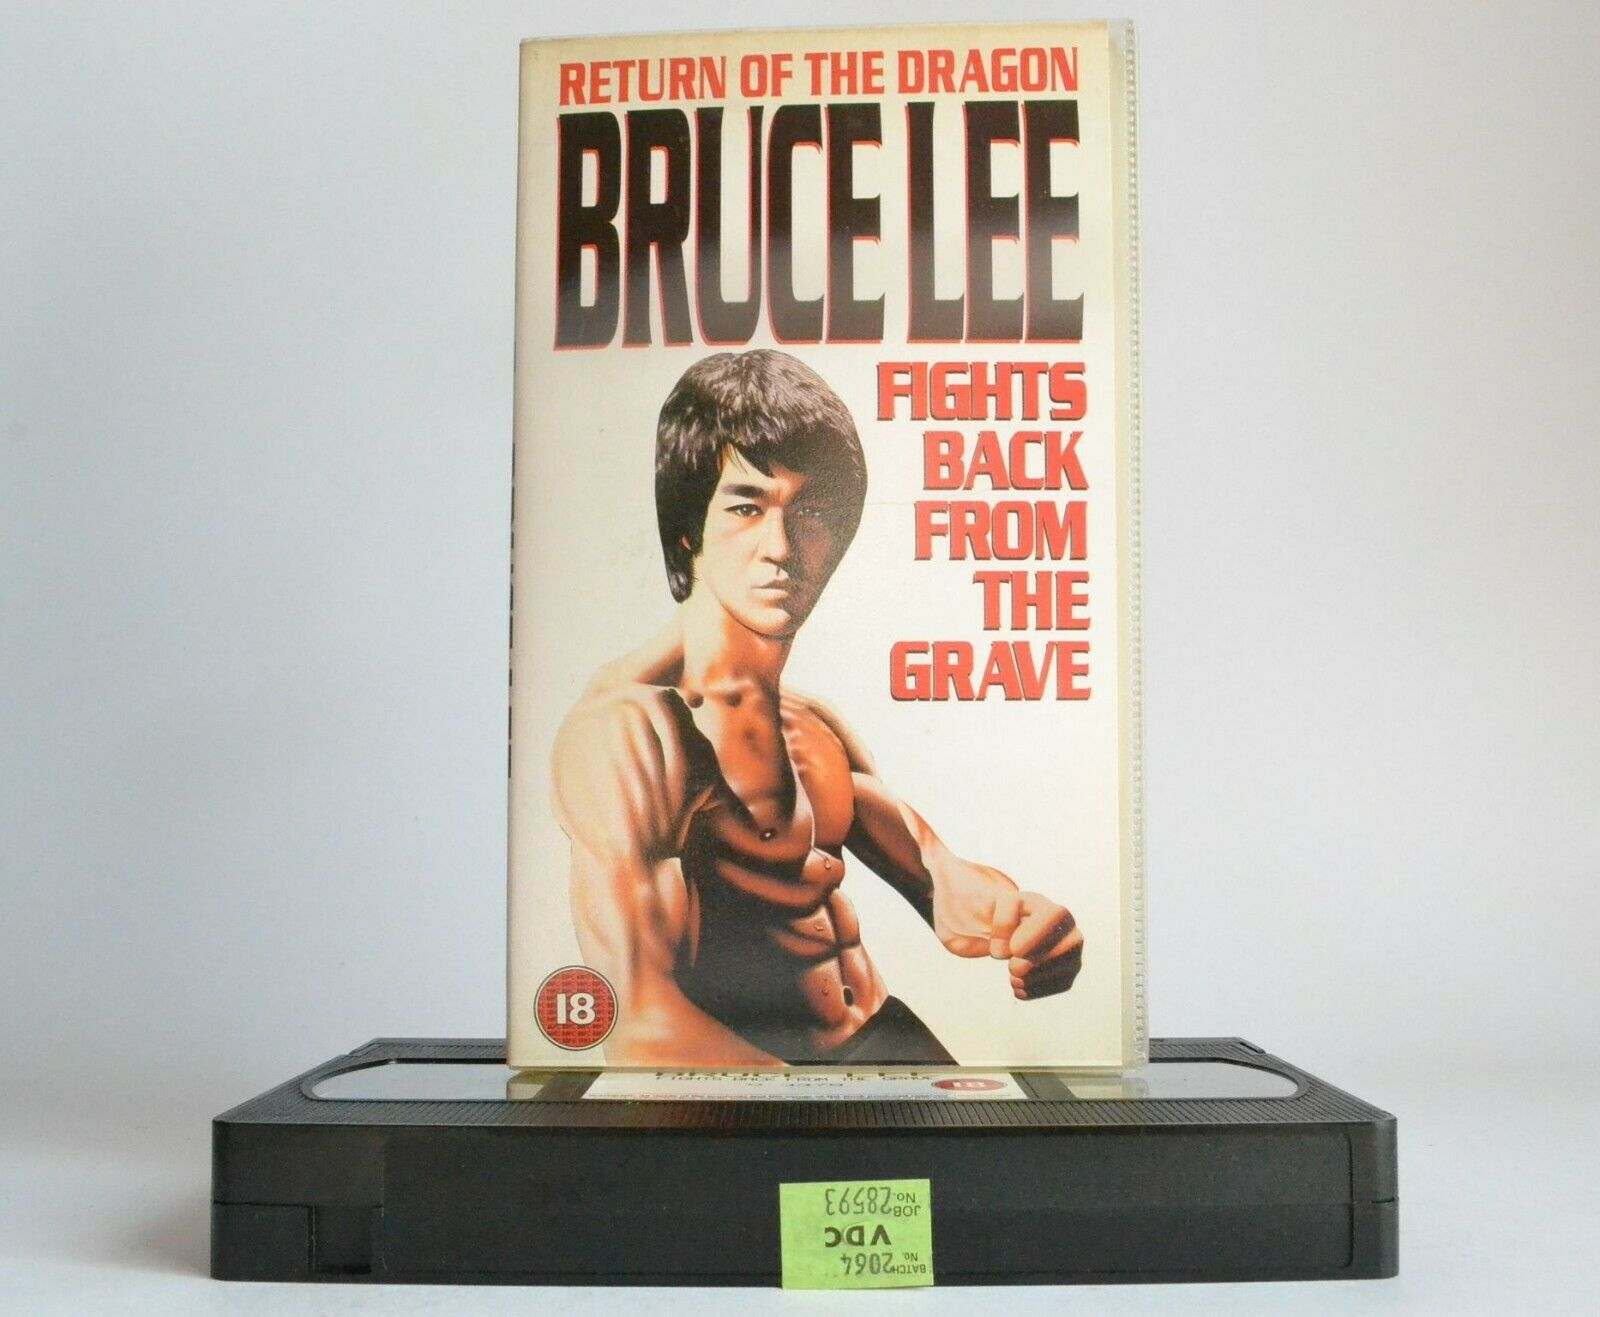 Bruce Lee Fights Back From The Grave (1976) - Martial Arts Action - Jun Chong - Pal VHS